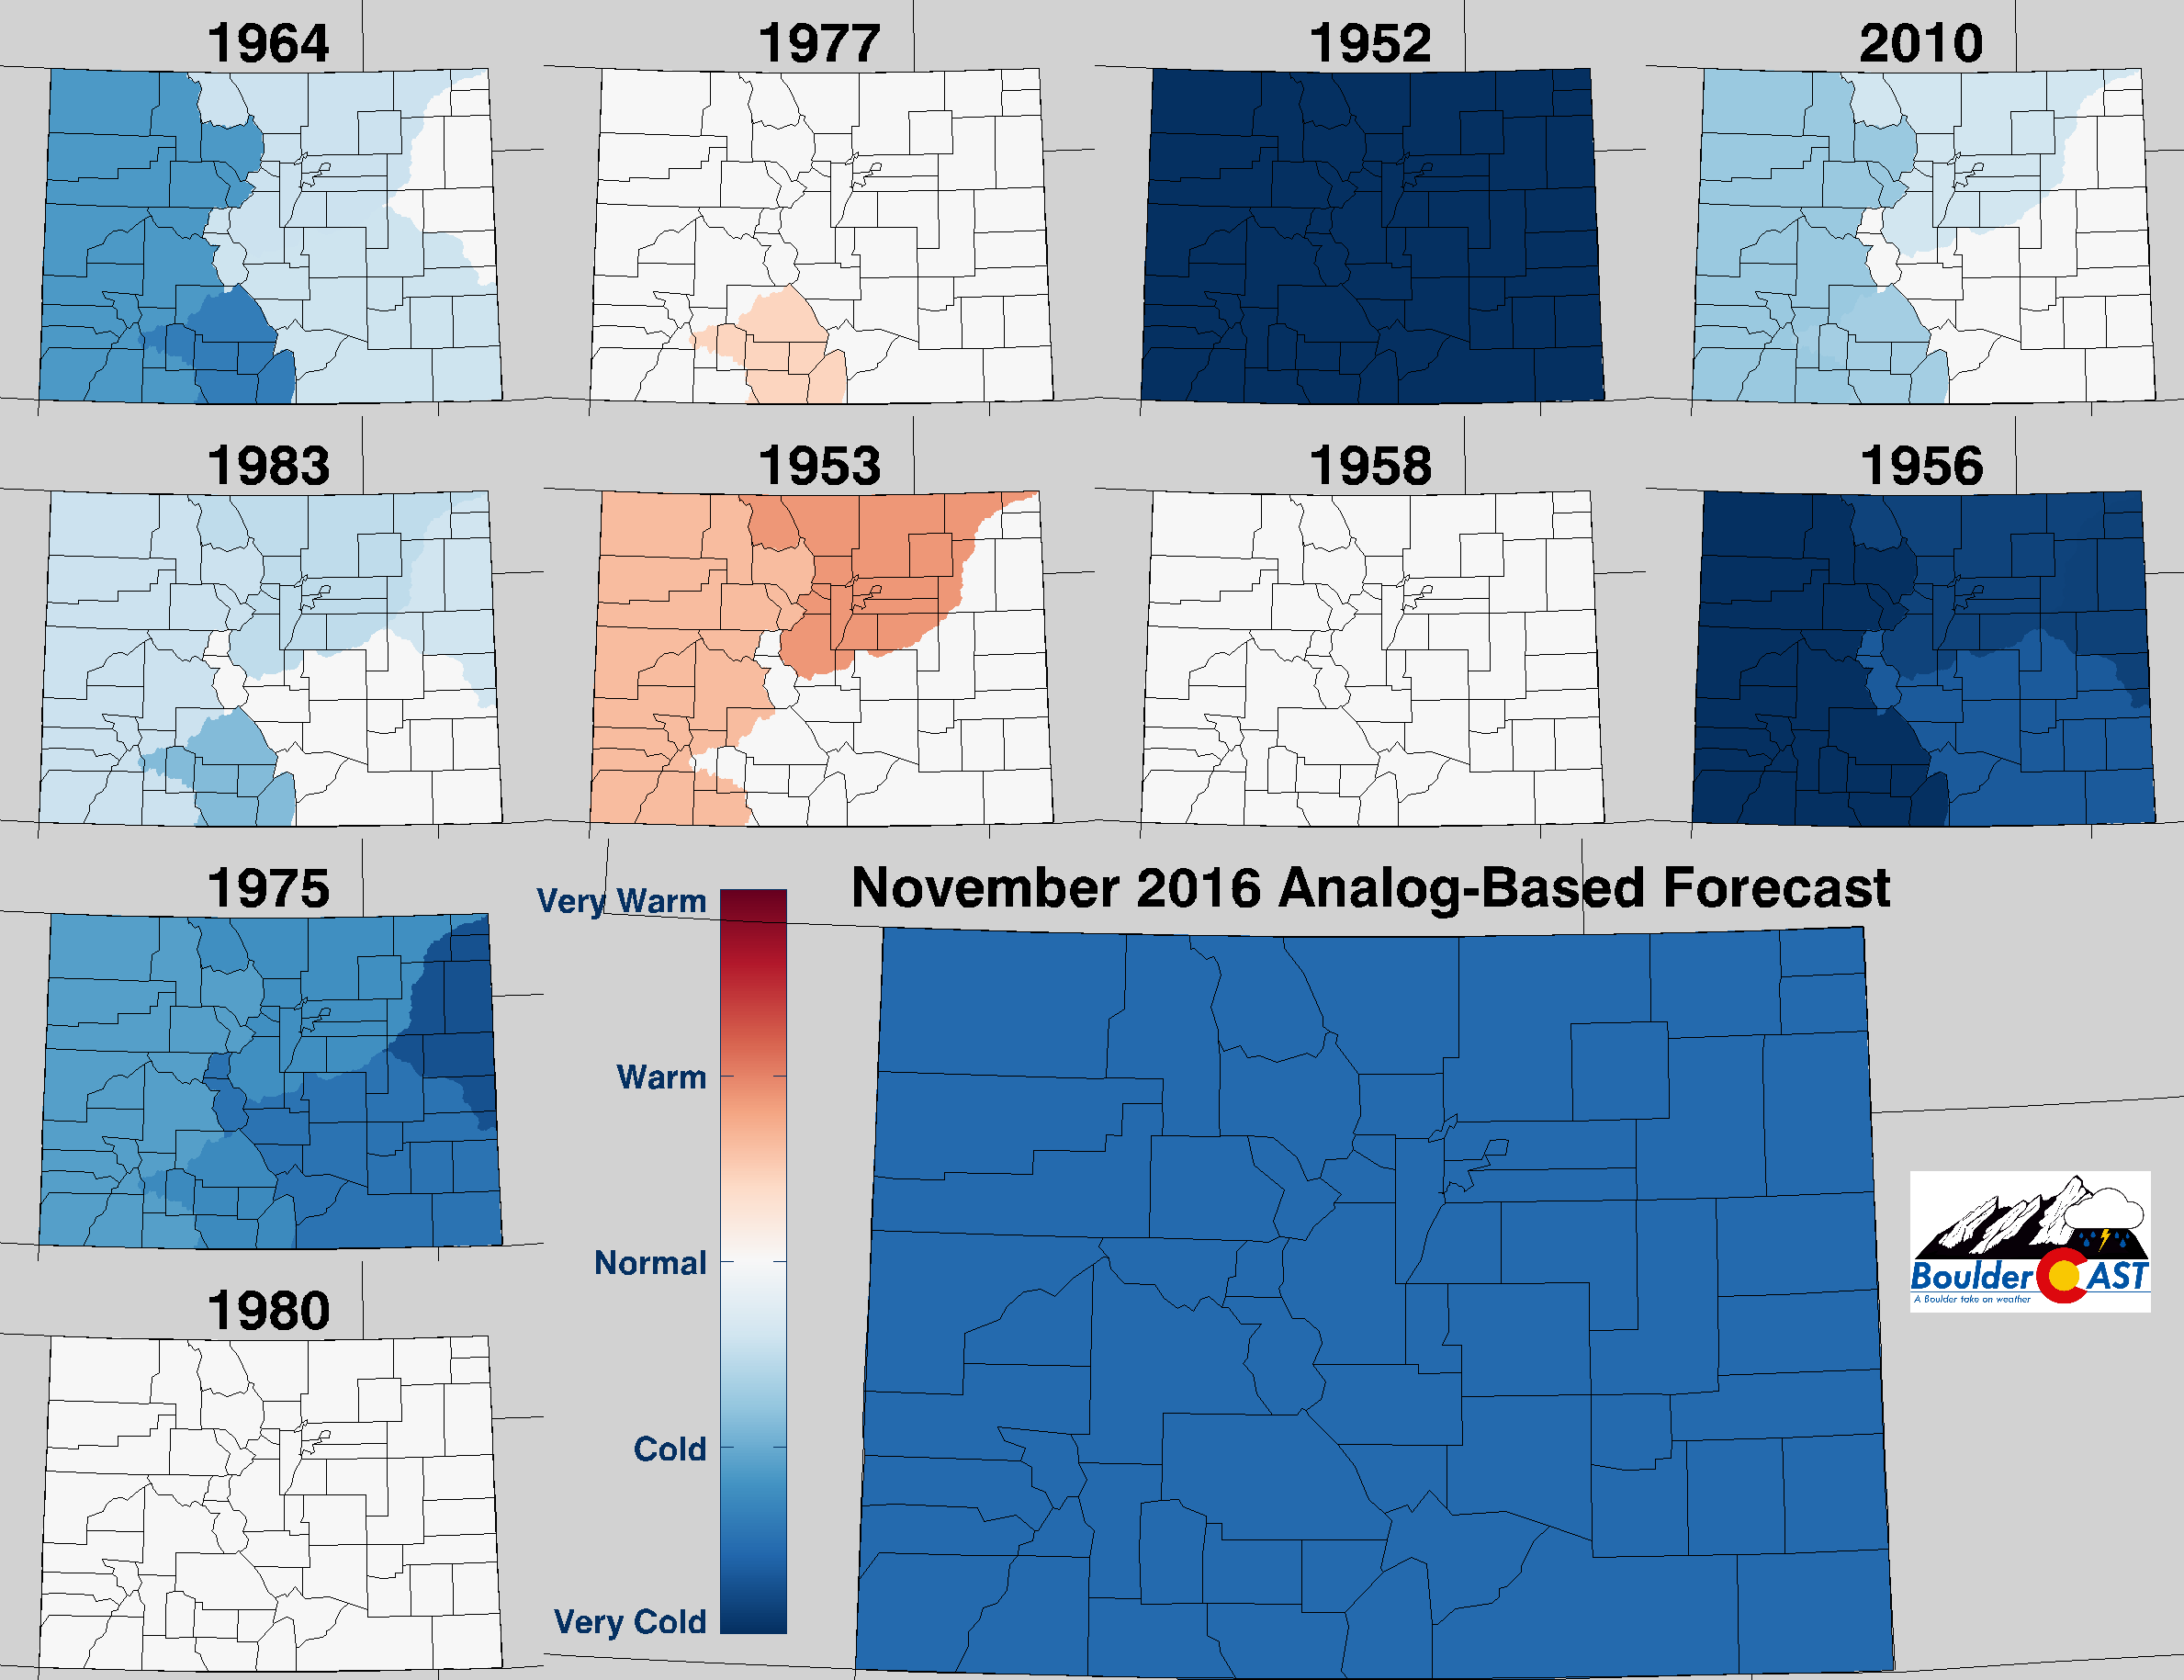 Top 10 Analogs to 2016 and how those years played for TEMPERATURE in Colorado during the month of November. The large map shows the analog-based weighted consensus forecast based on those 10 years.